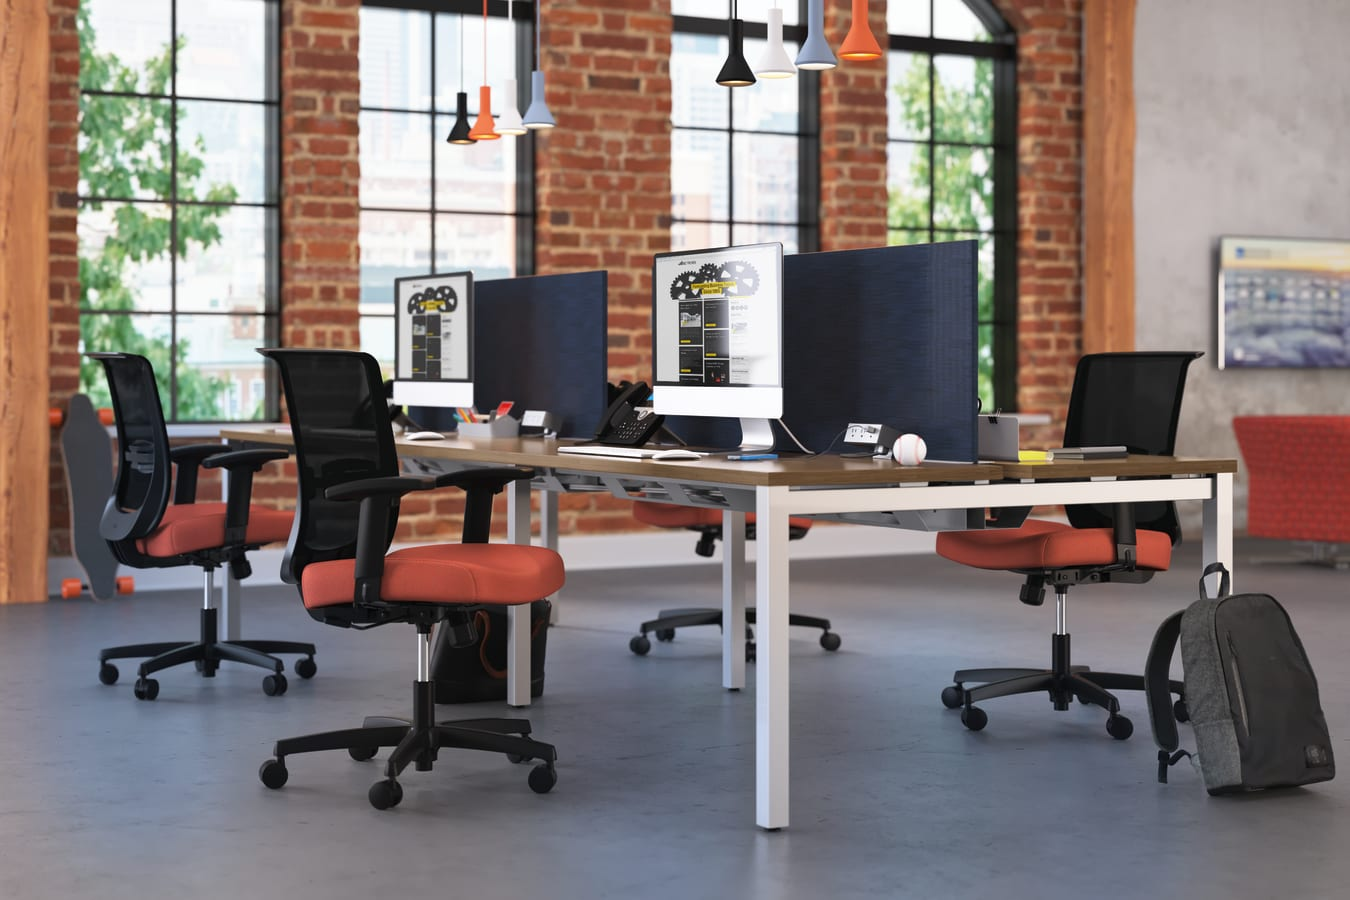 HON/Chairs/Convergence/HON-Convergence-Empower-500-001